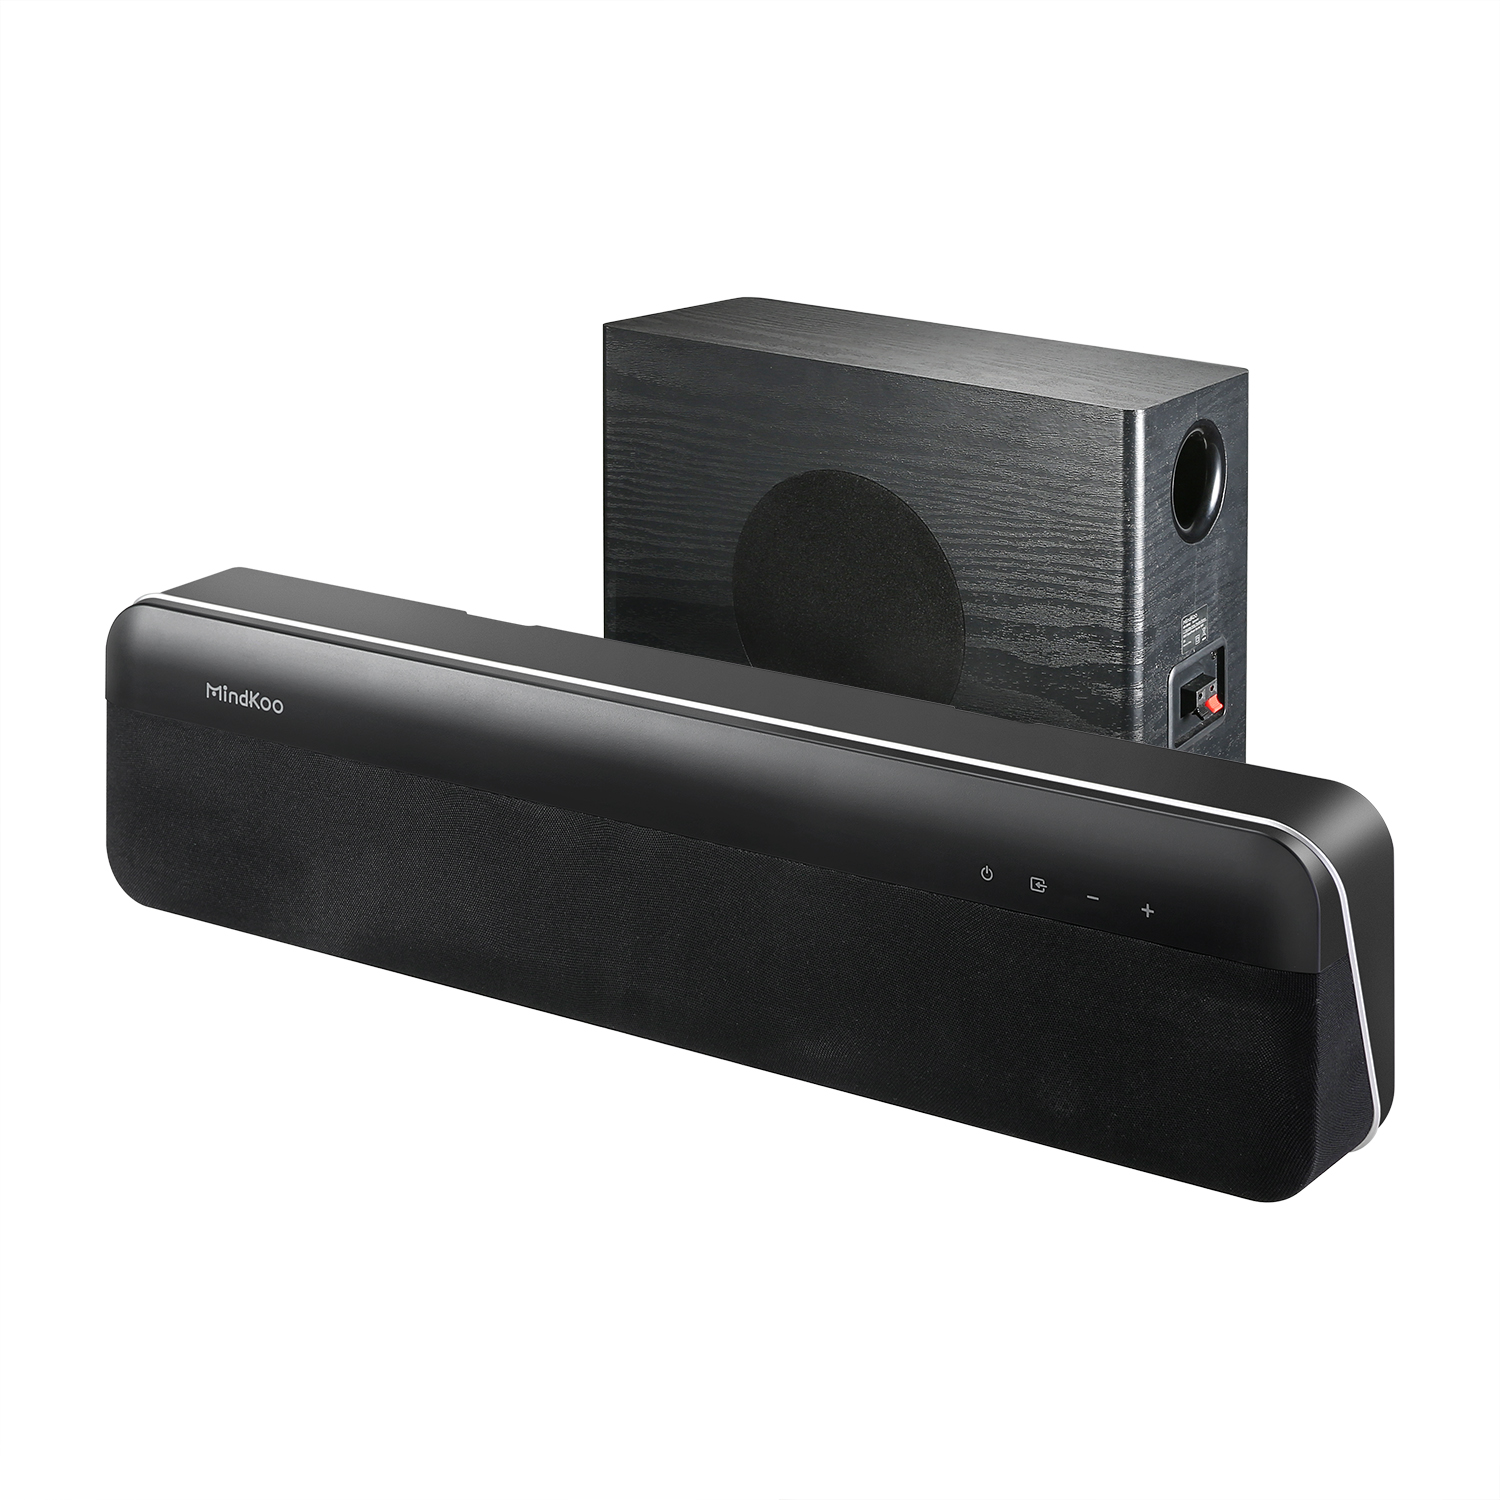 MindKoo Soundbar with Subwoofer